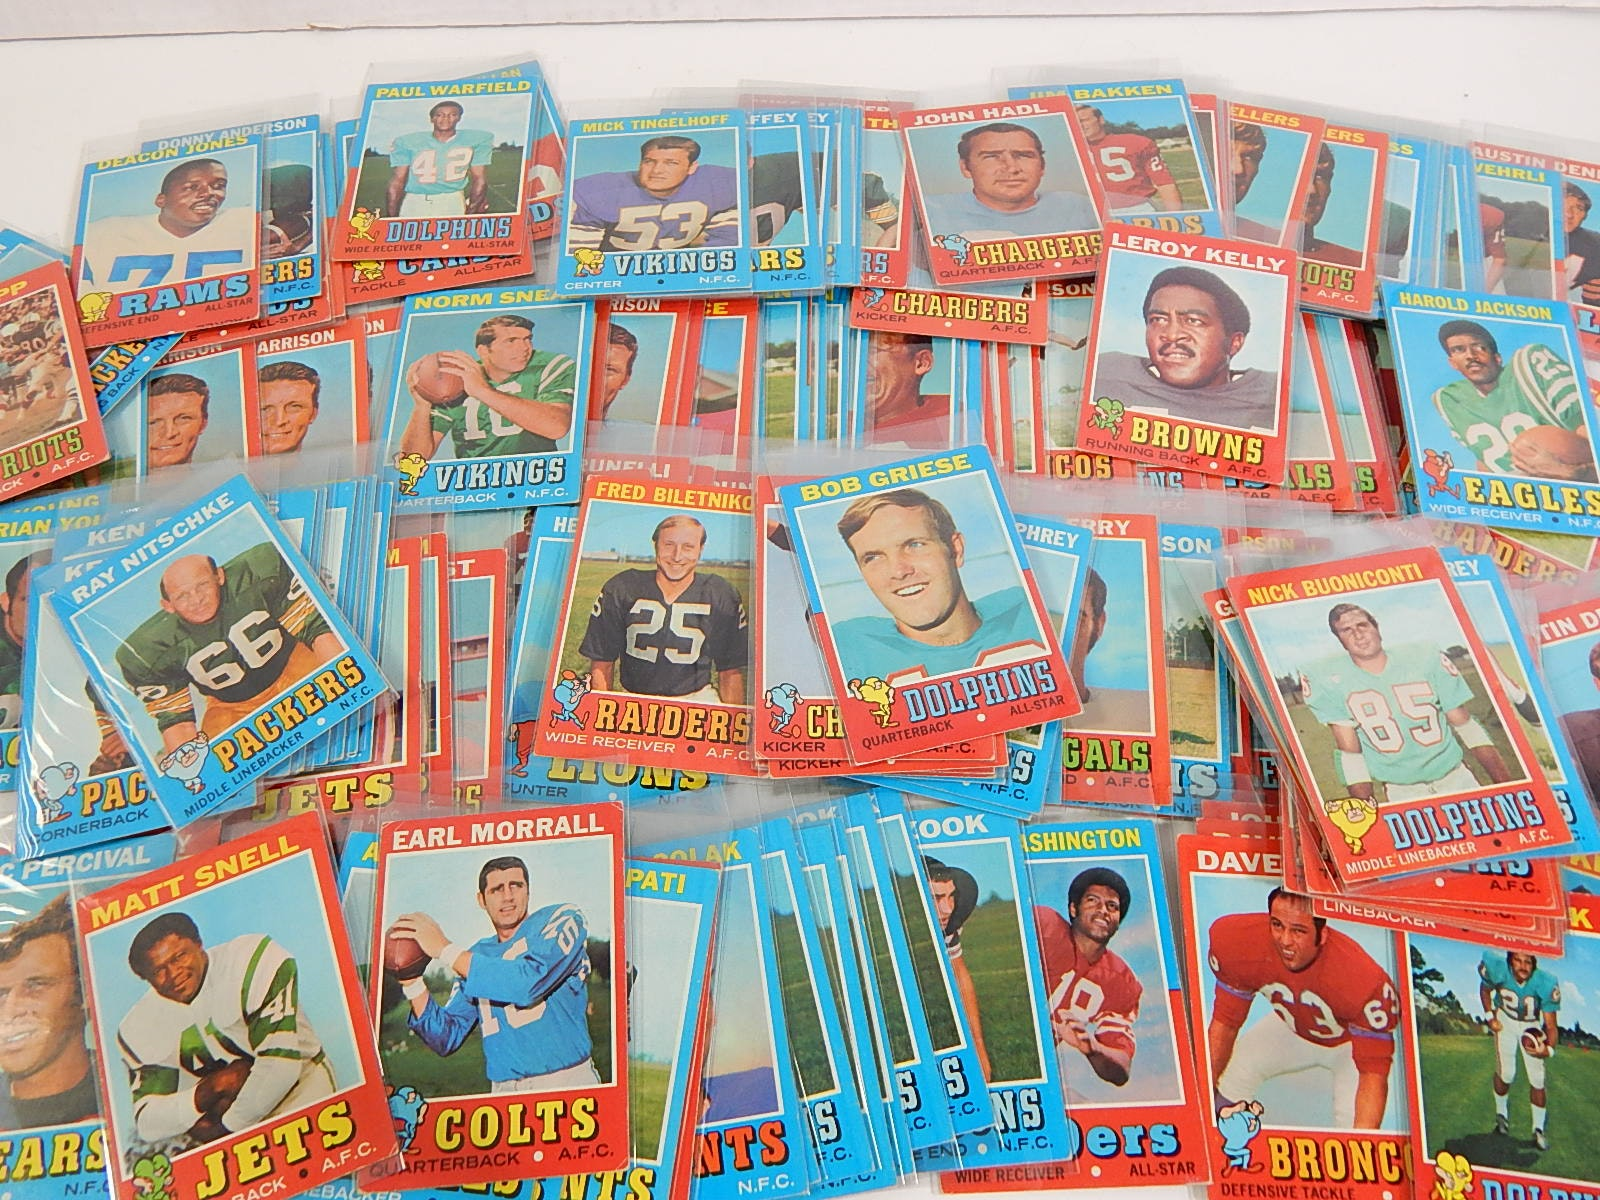 1971 Topps Football Card Collection - Around 125 Card Count